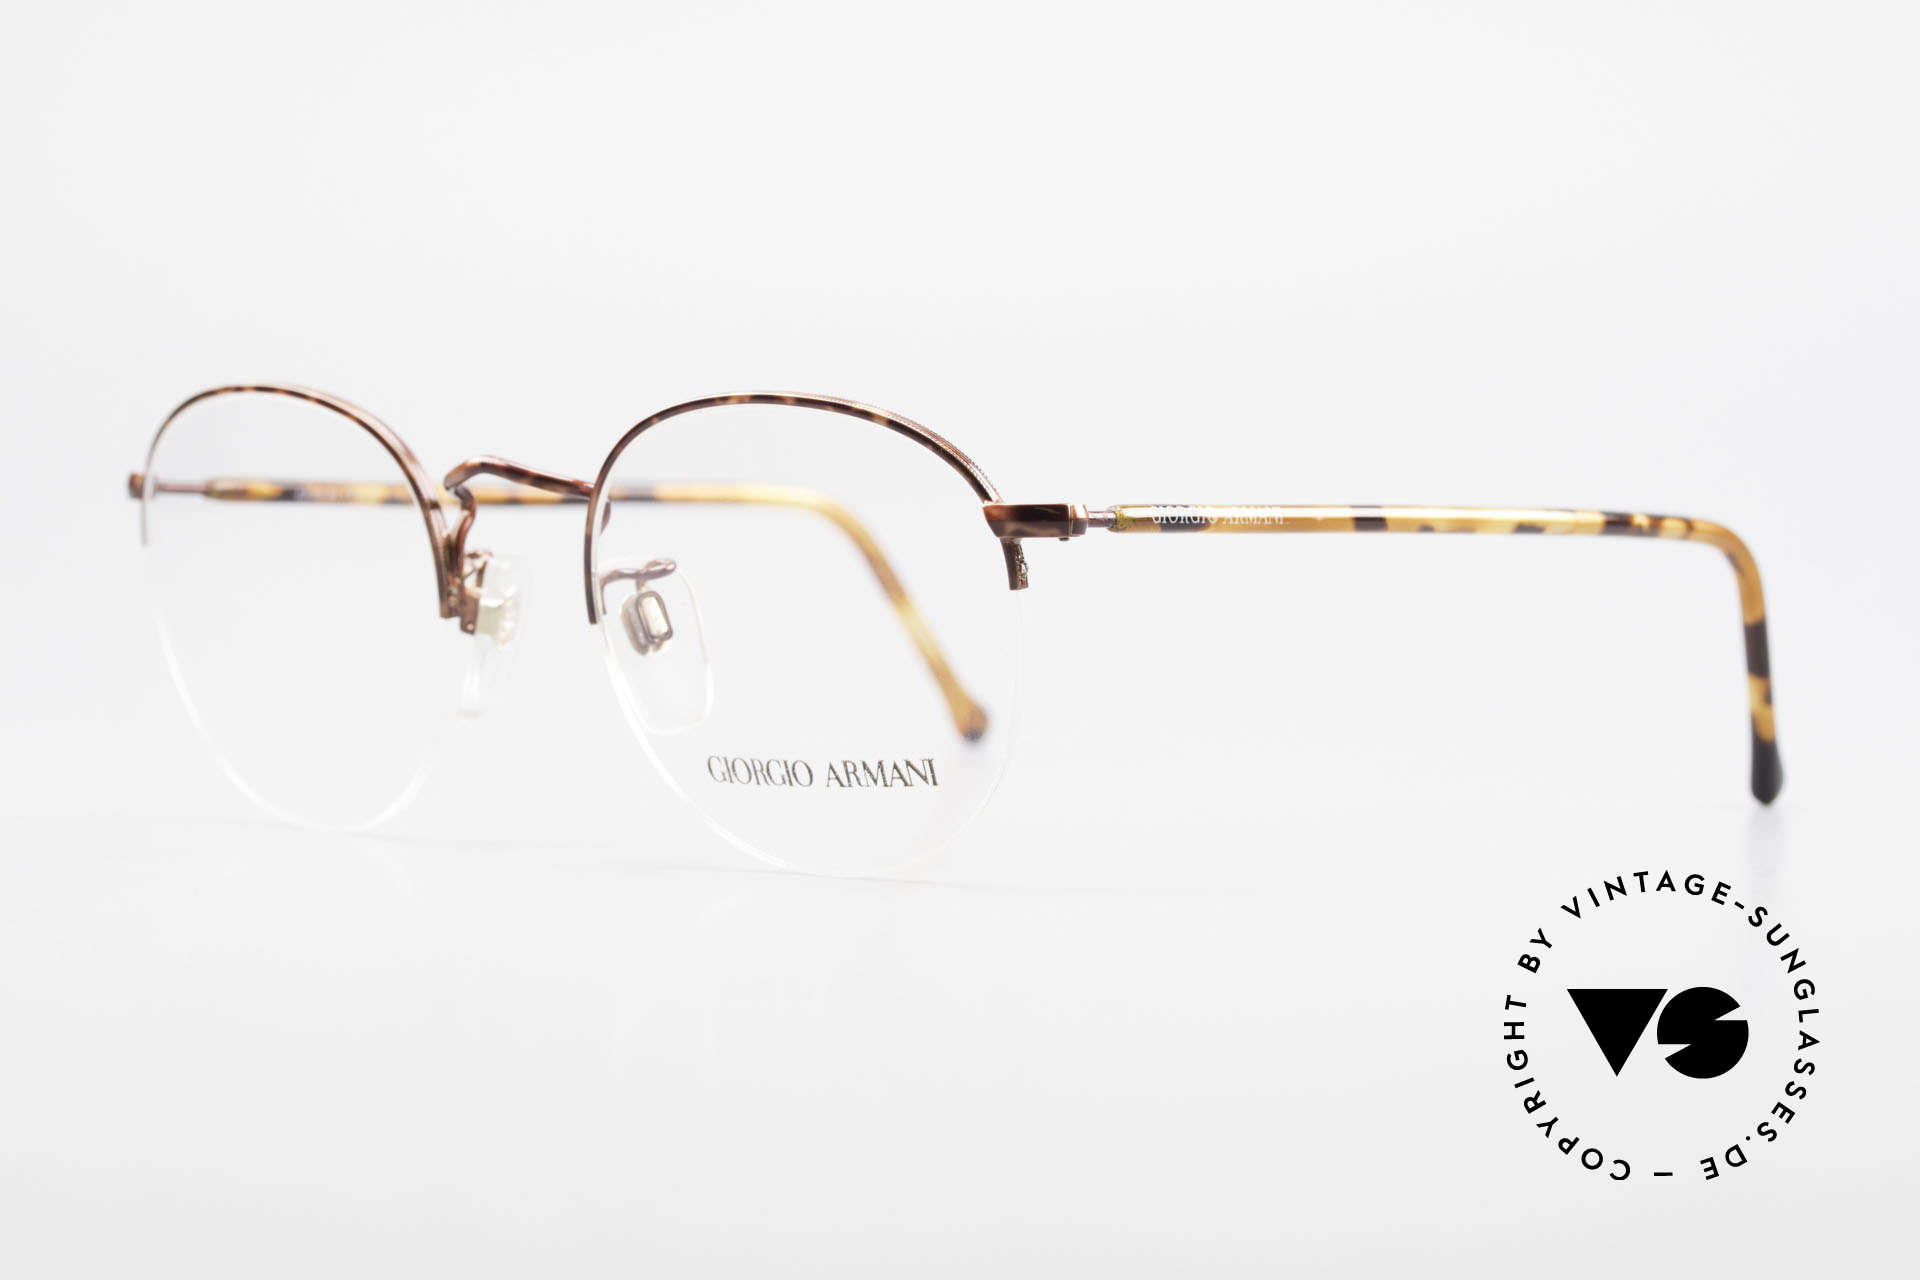 Giorgio Armani 142 Rimless Panto Glasses Small, the lenses are fixed with a nylor thread at the frame, Made for Men and Women